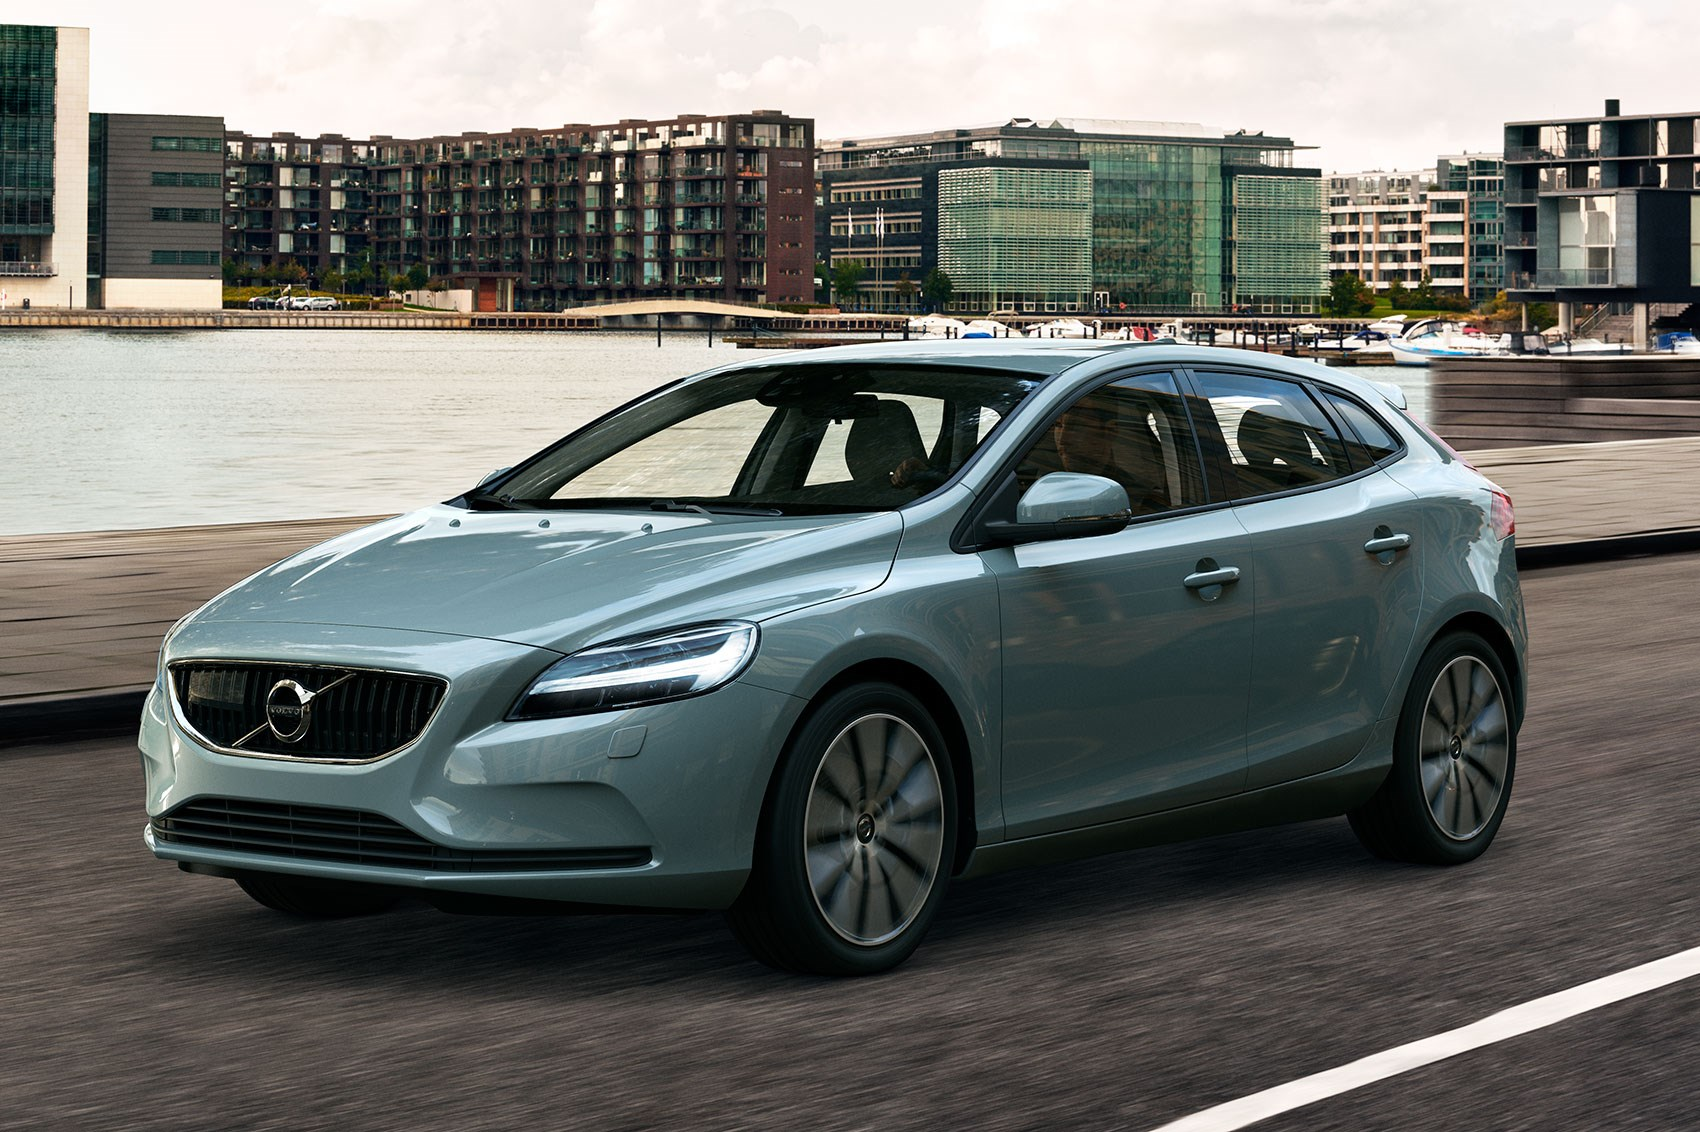 volvo v40 gets thor s hammer facelift for 2016 by car magazine. Black Bedroom Furniture Sets. Home Design Ideas